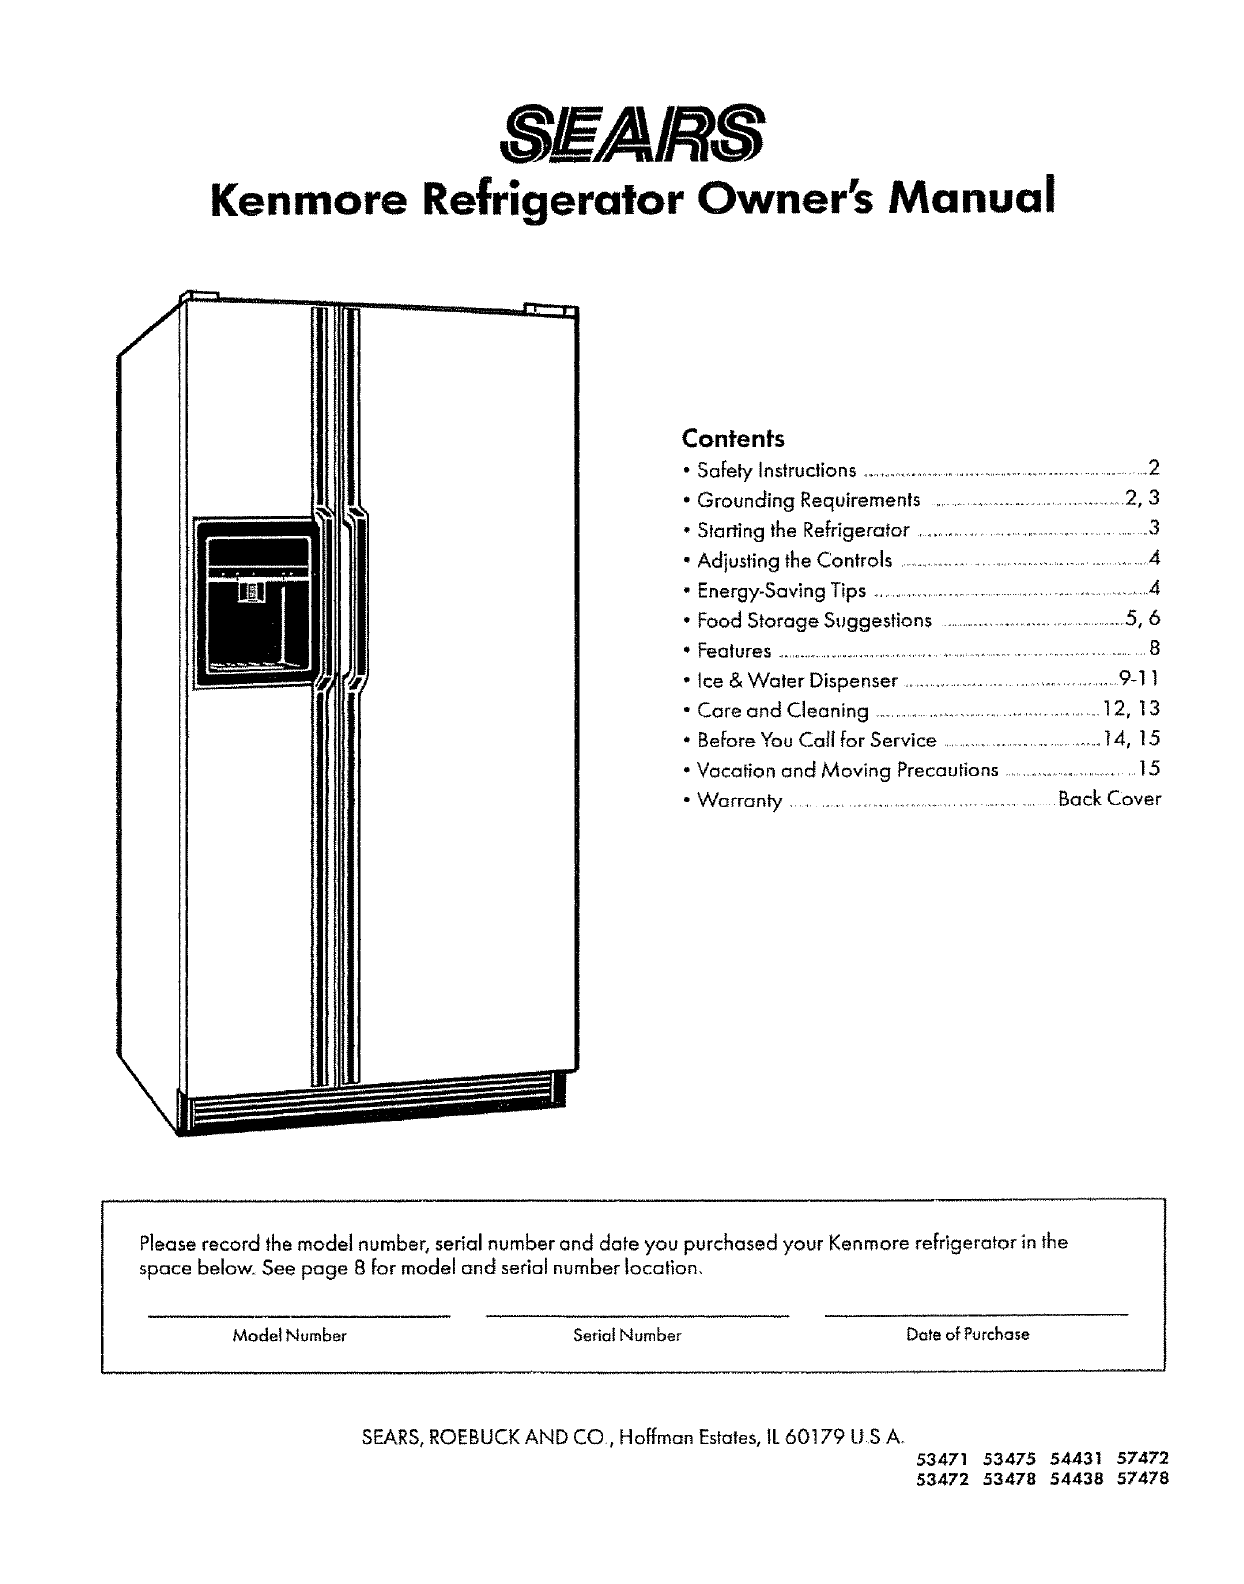 sears refrigerator 53478 user guide manualsonline com rh kitchen manualsonline com sears kenmore refrigerator parts sears kenmore refrigerator replacement parts